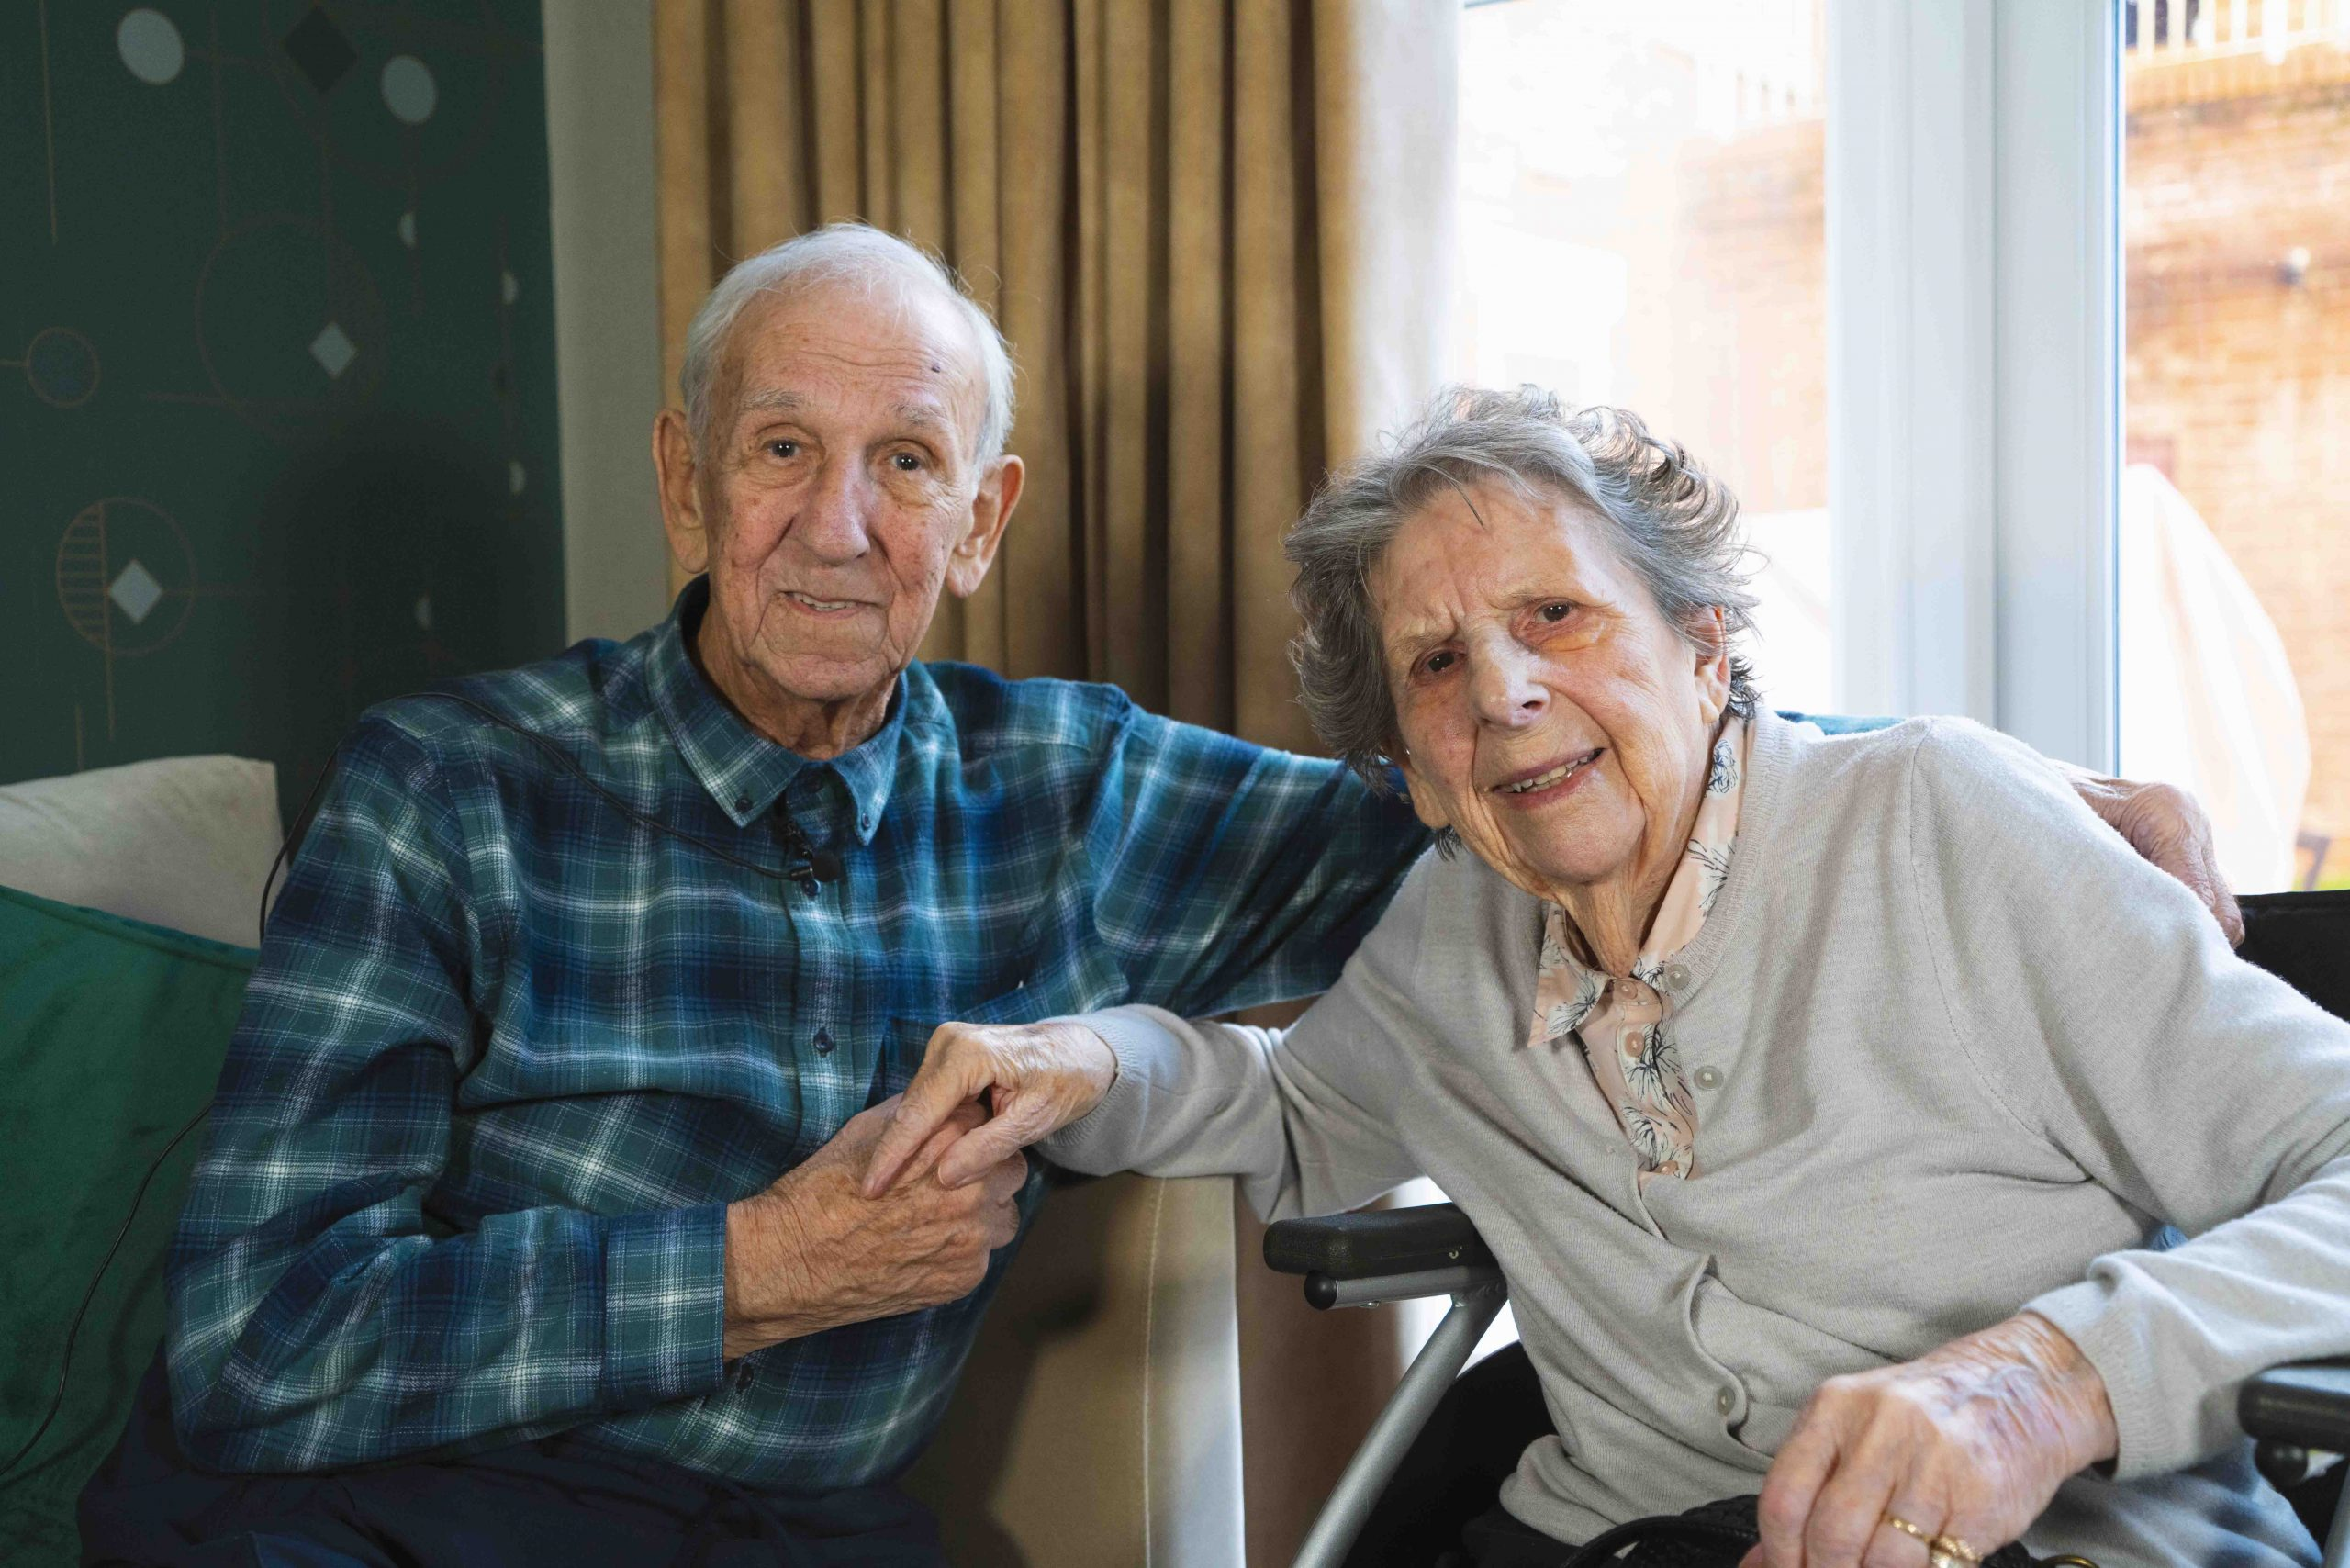 Elderly gentleman and lady; married couple in care home setting.